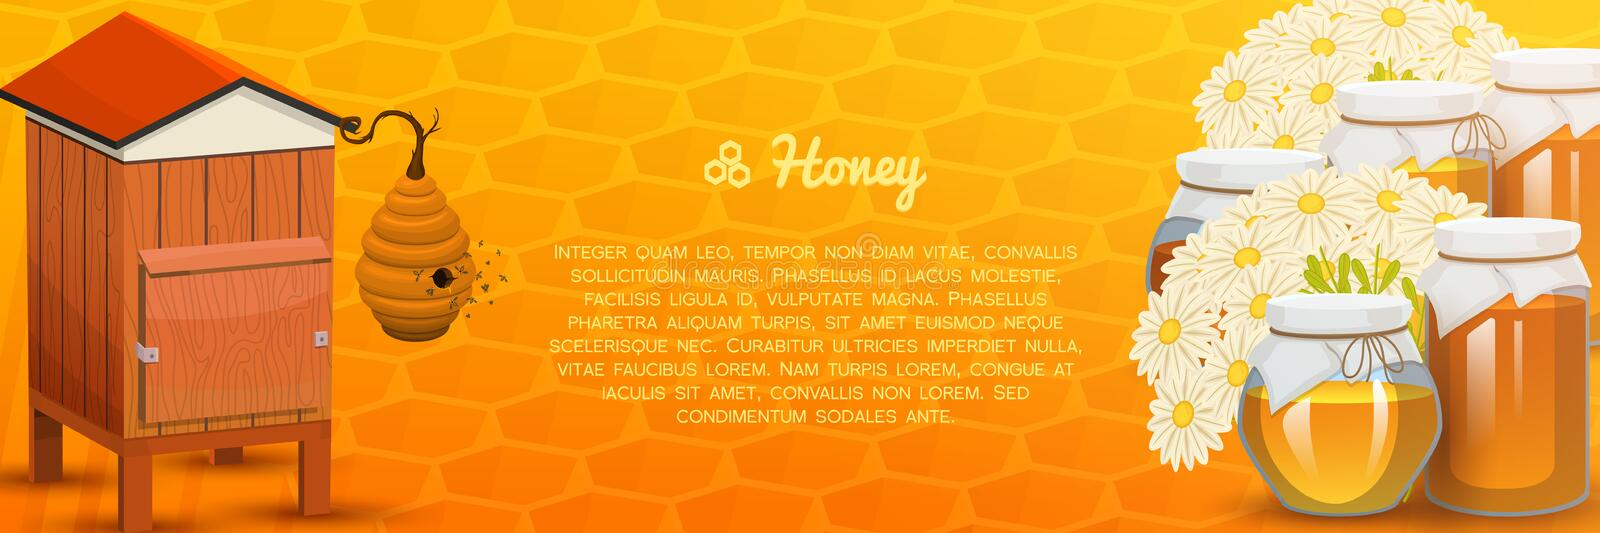 Honey or natural farm product. beekeeping or garden. Health, organic sweets, medicine illustration, agriculture. food in stock illustration